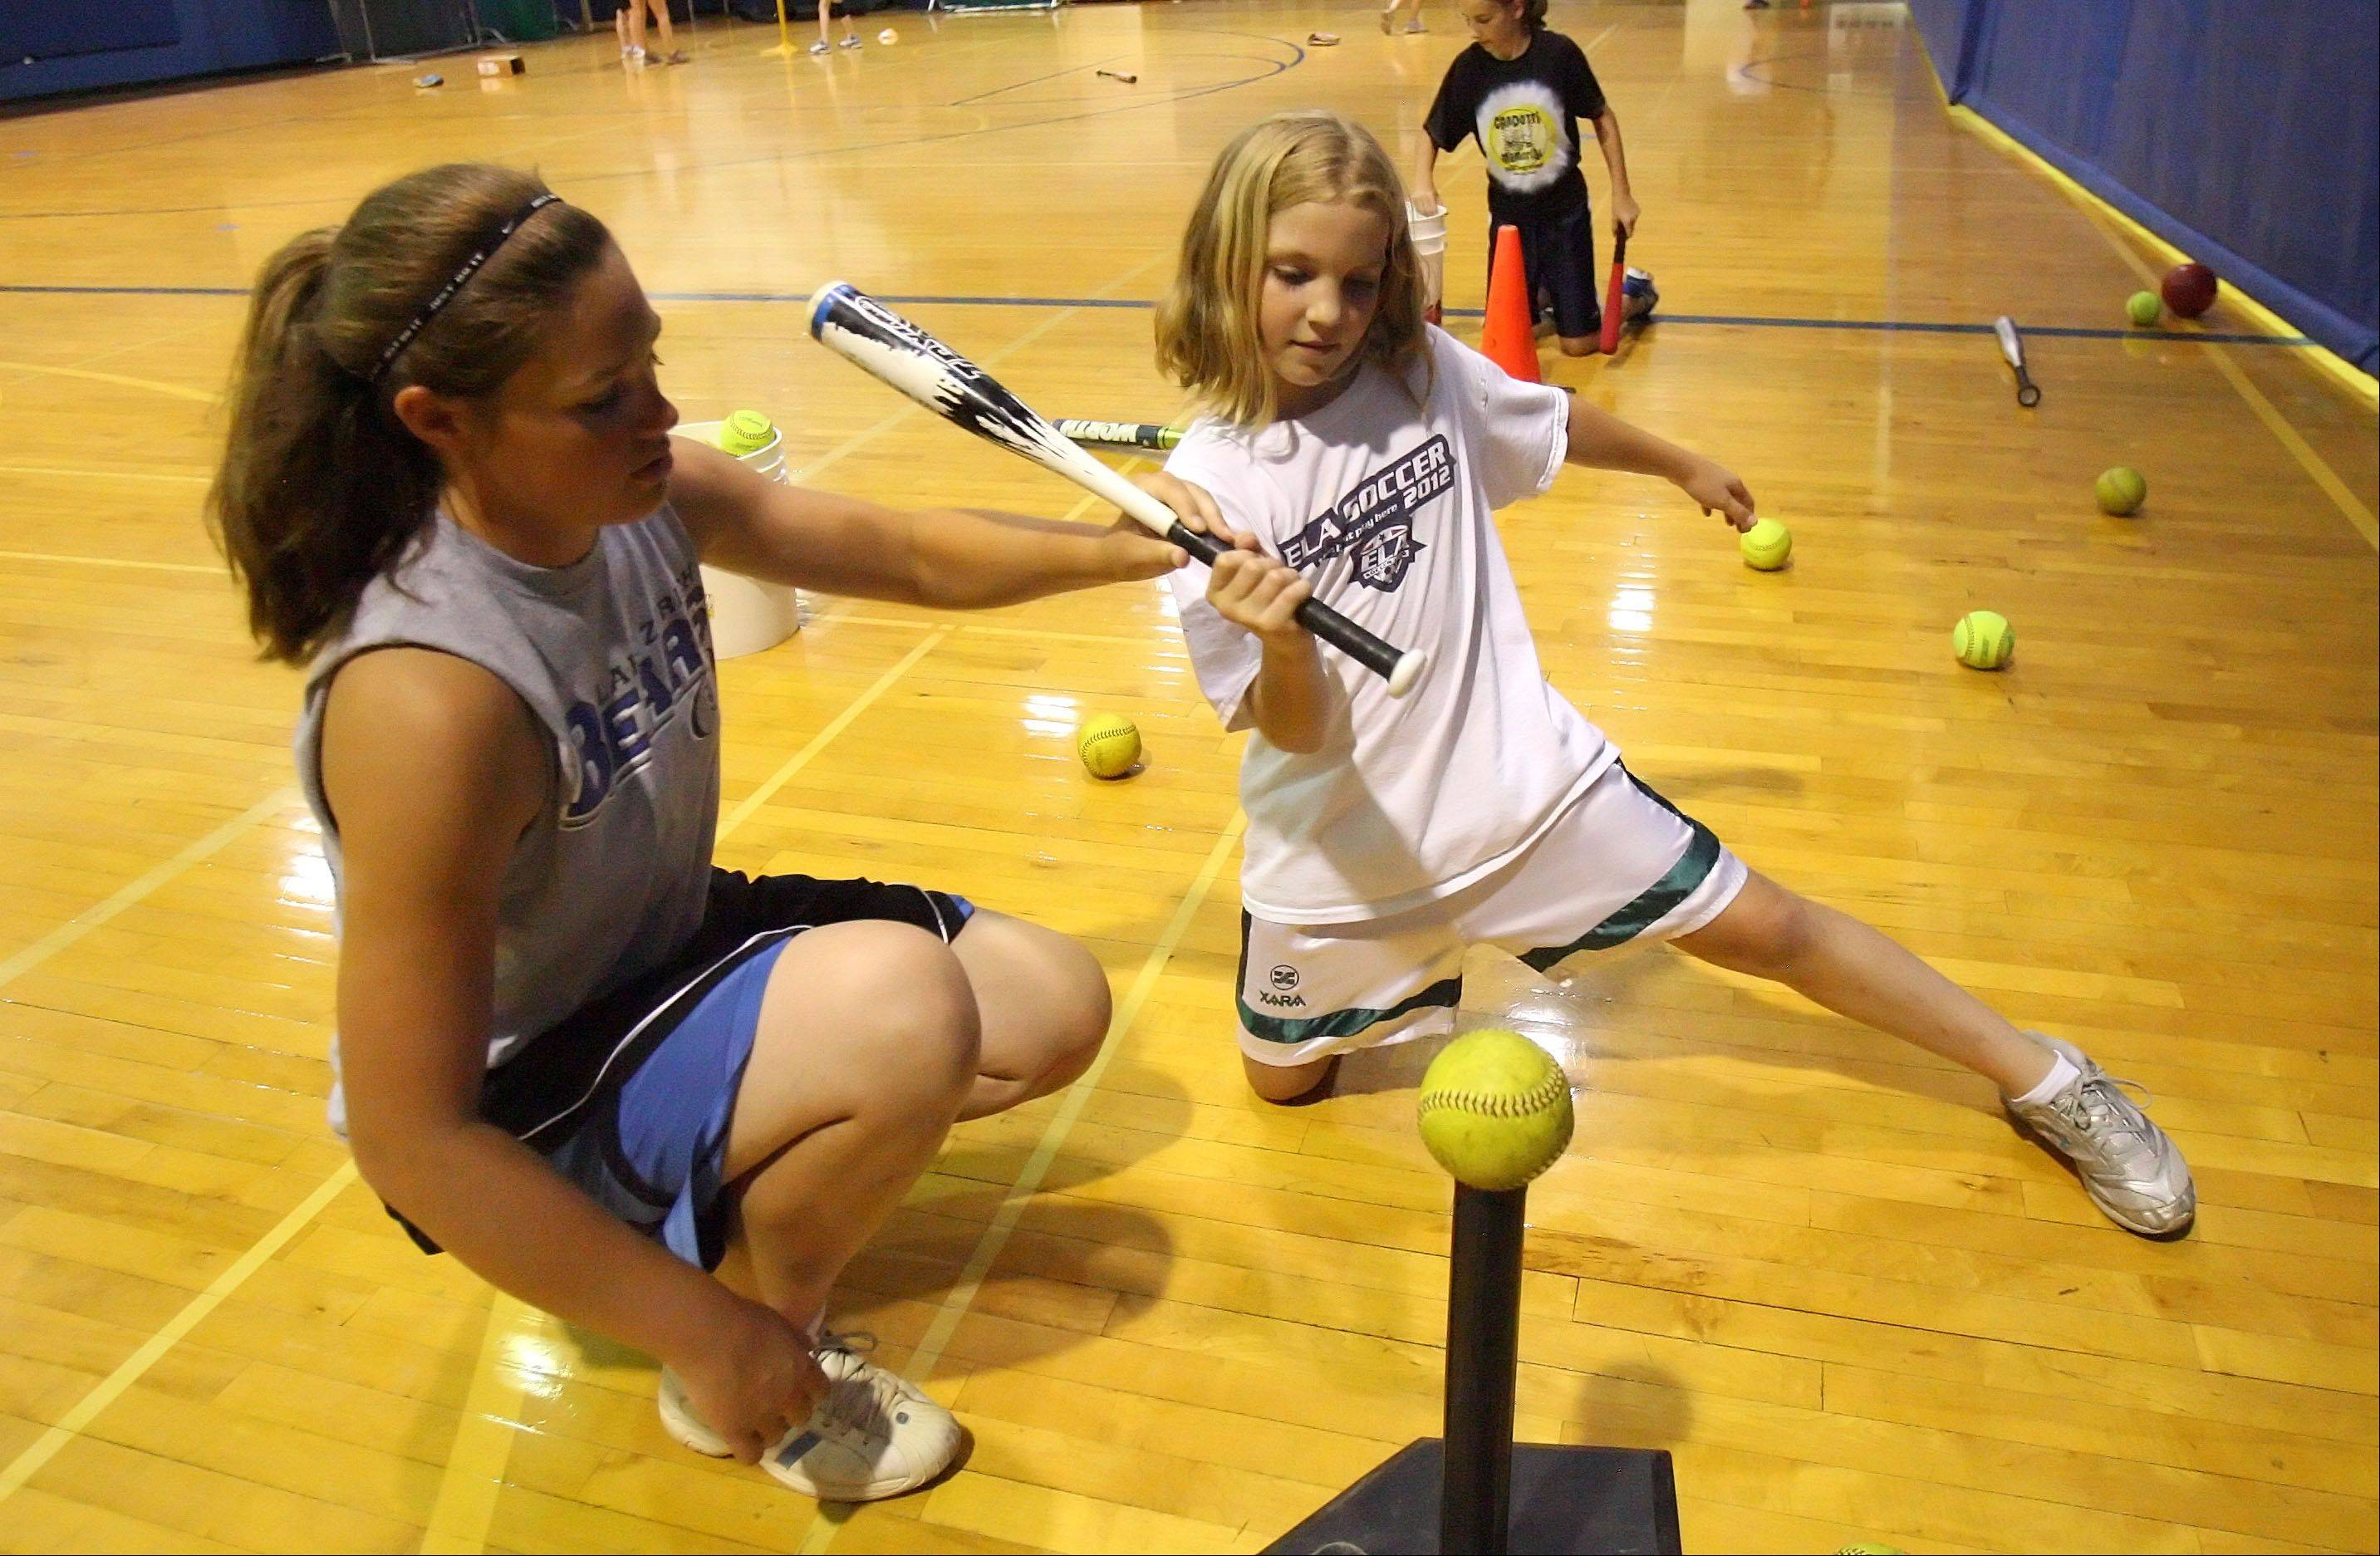 Softball instructor Christina Sandstedt goes through a drill with 9-year-old Nina Malak of Hawthorn Woods as the Lake Zurich High School softball camp went indoors to beat the heat Thursday.